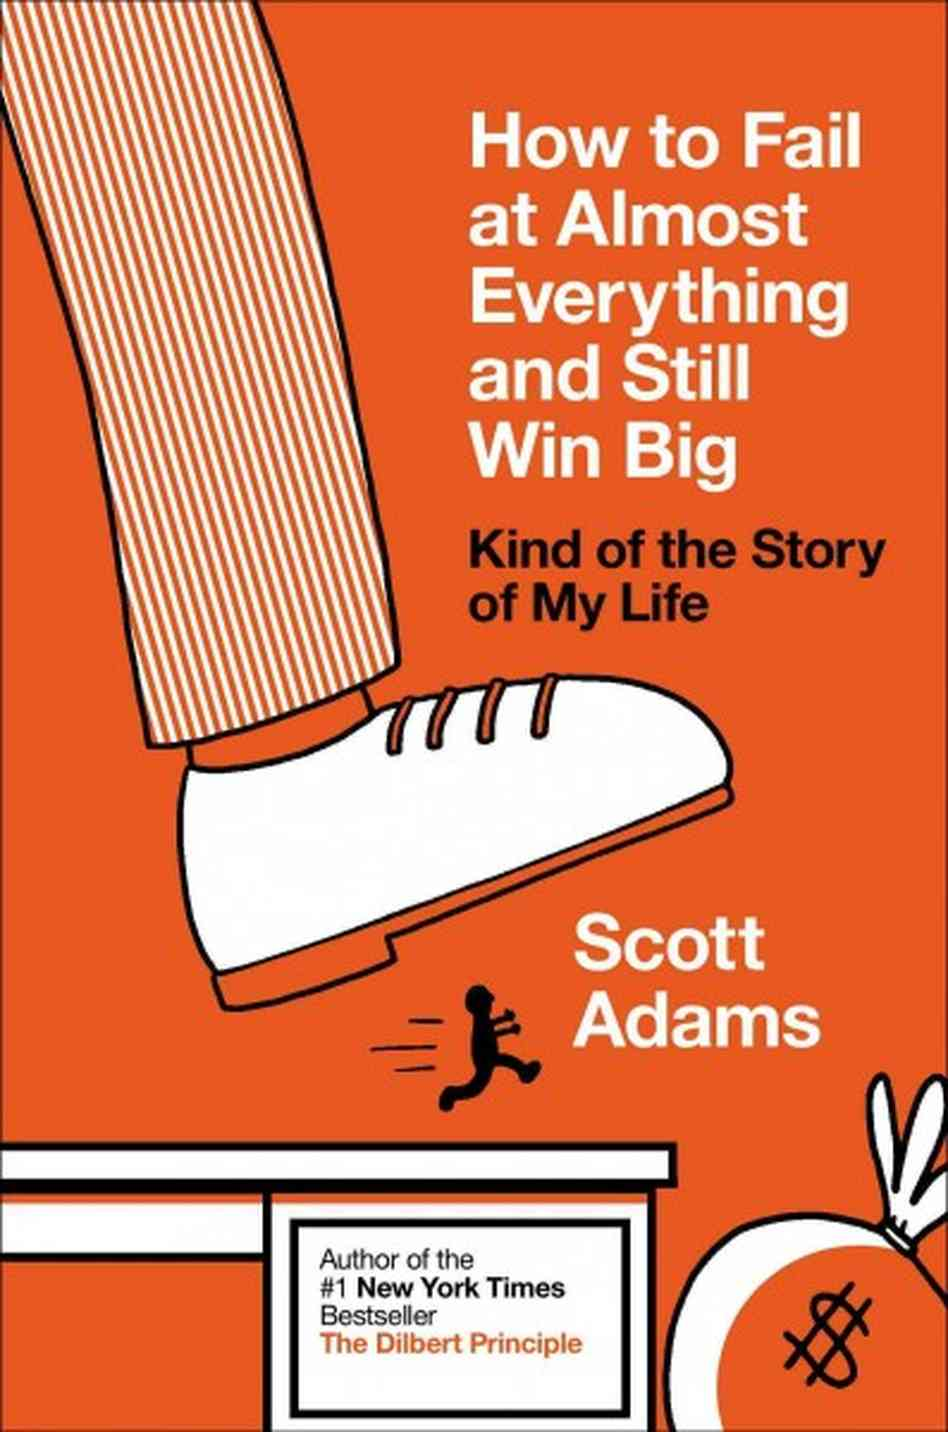 How to Fail at Almost Everything and Still Win Big (Working Version) - Scott Adams